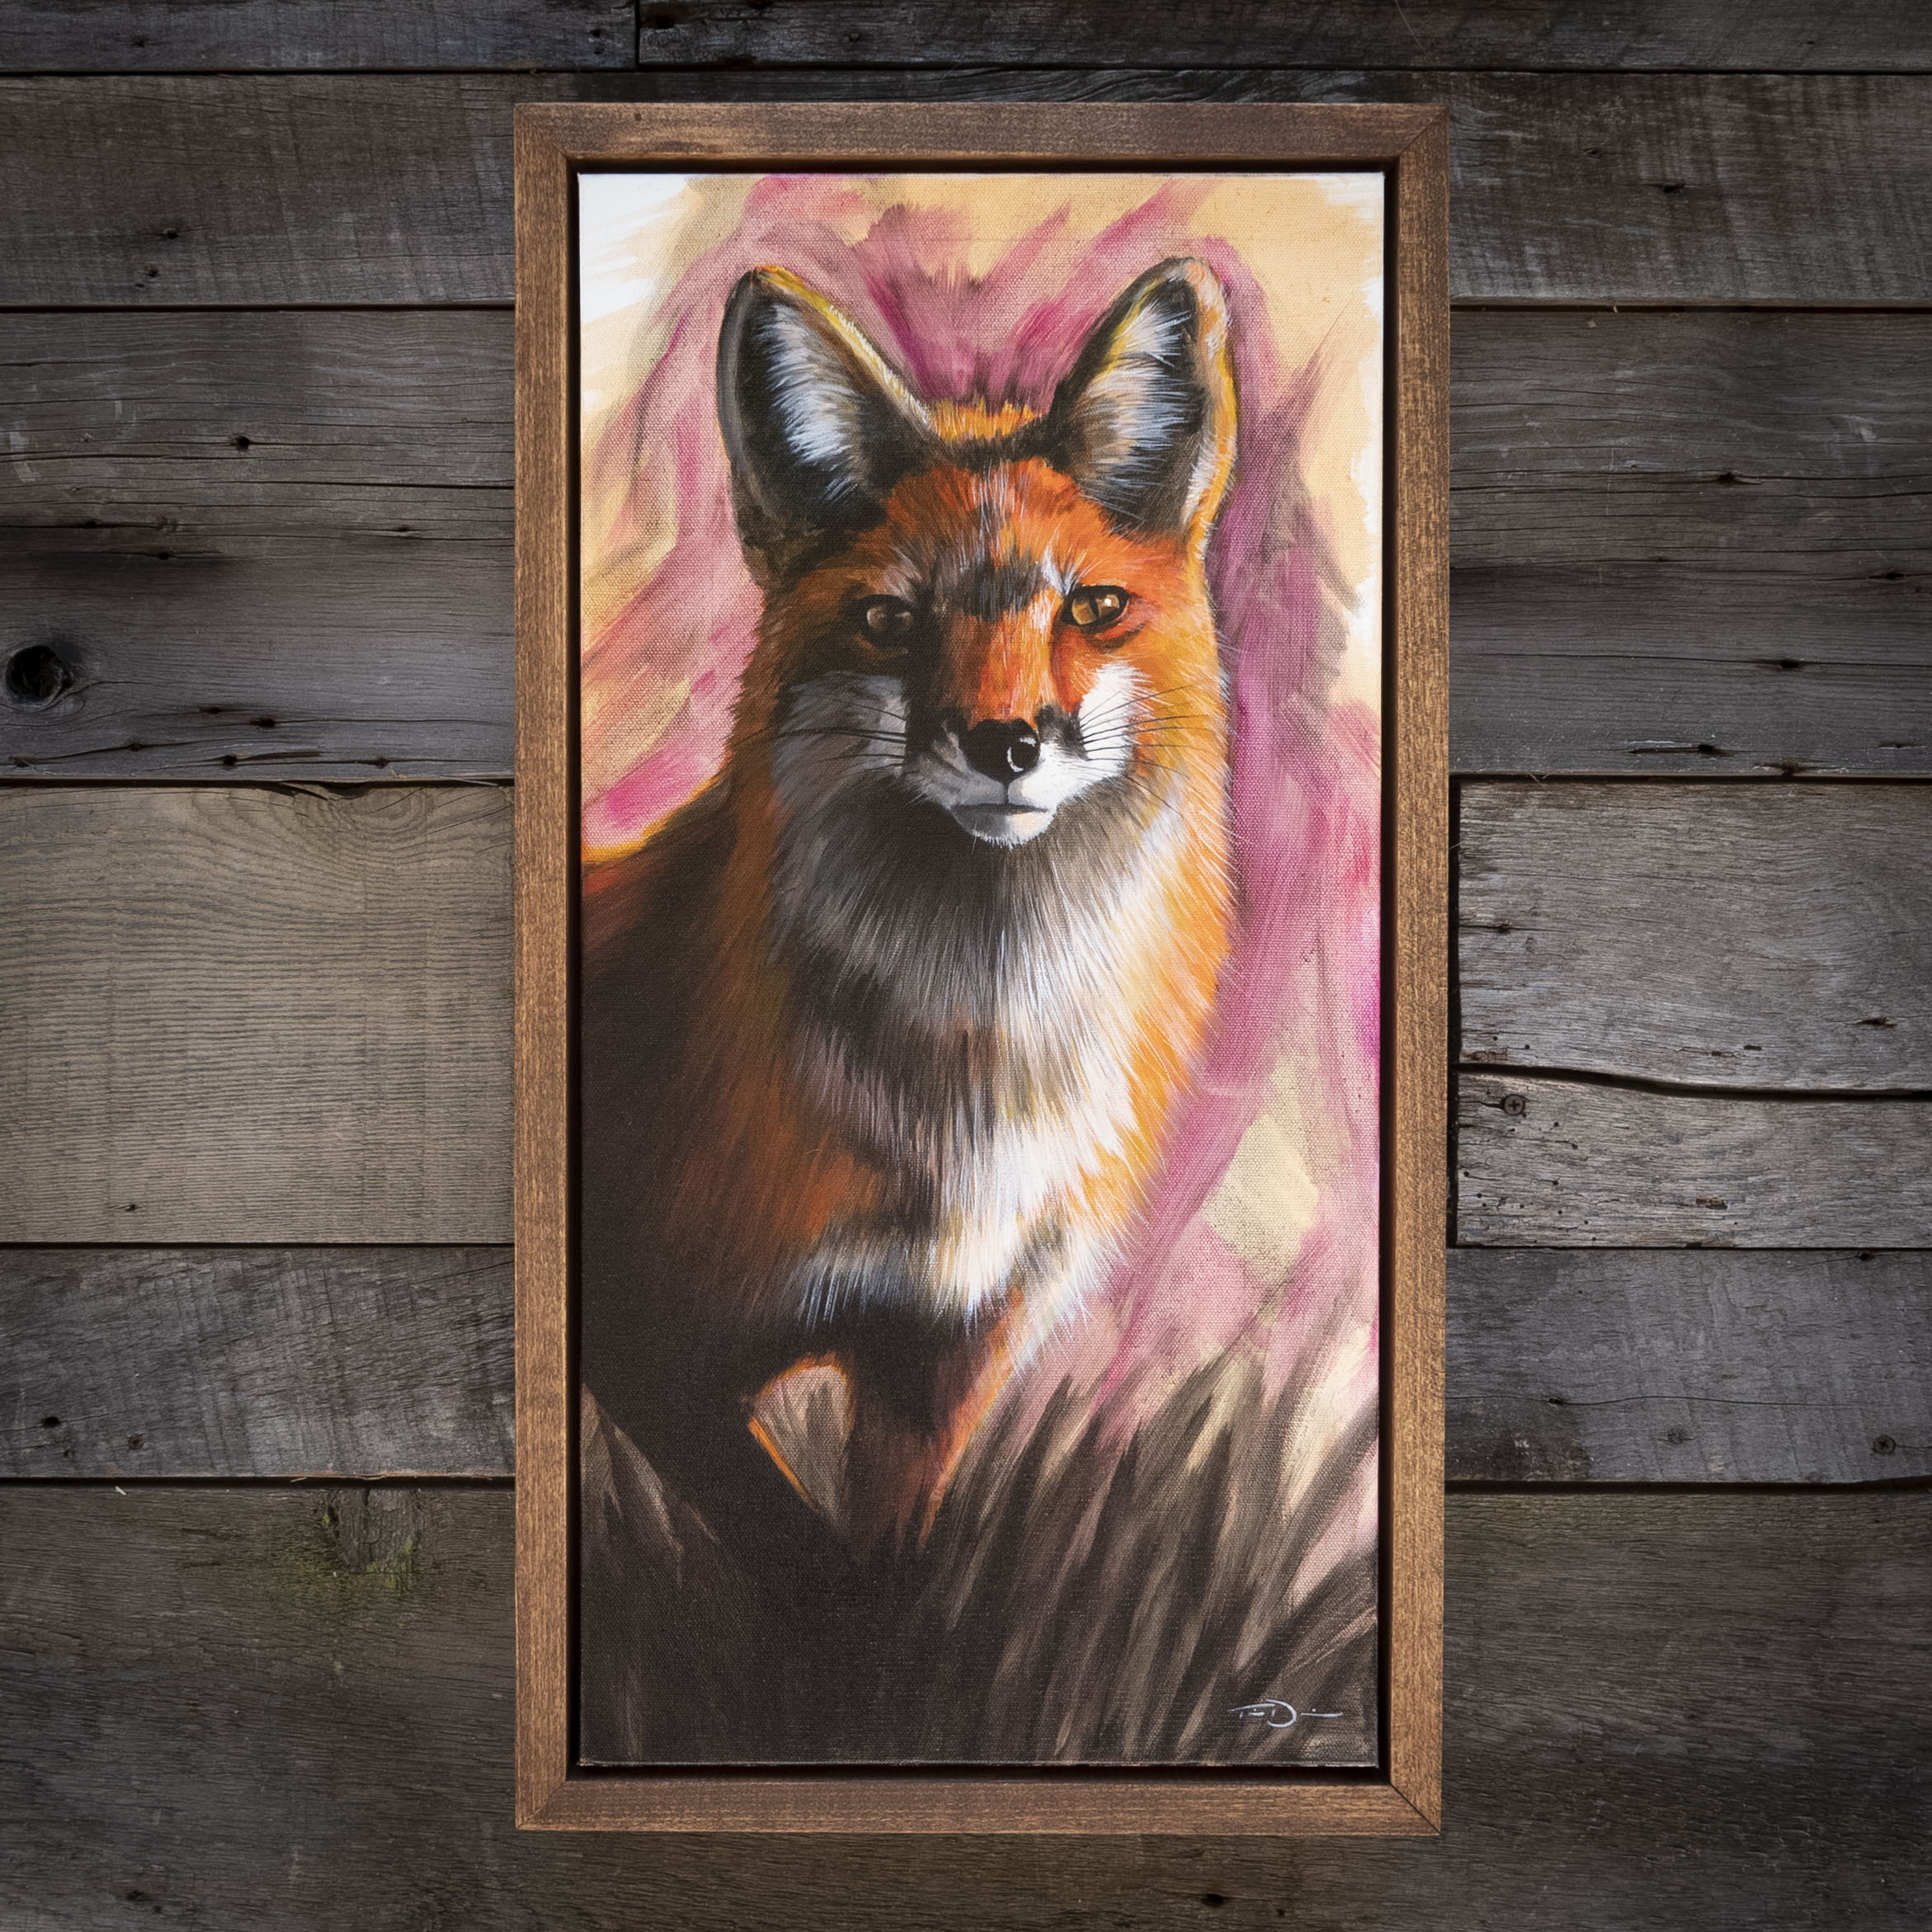 Golden Hour Fox - Original oil painting by wildlife artist Timothy Davison of the Davison Art Company featuring a red fox stepping out from grass at sunset, with purple, magenta, and orange. Framed in a custom hardwood floating frame. © COPYRIGHT TIMOTHY DAVISON